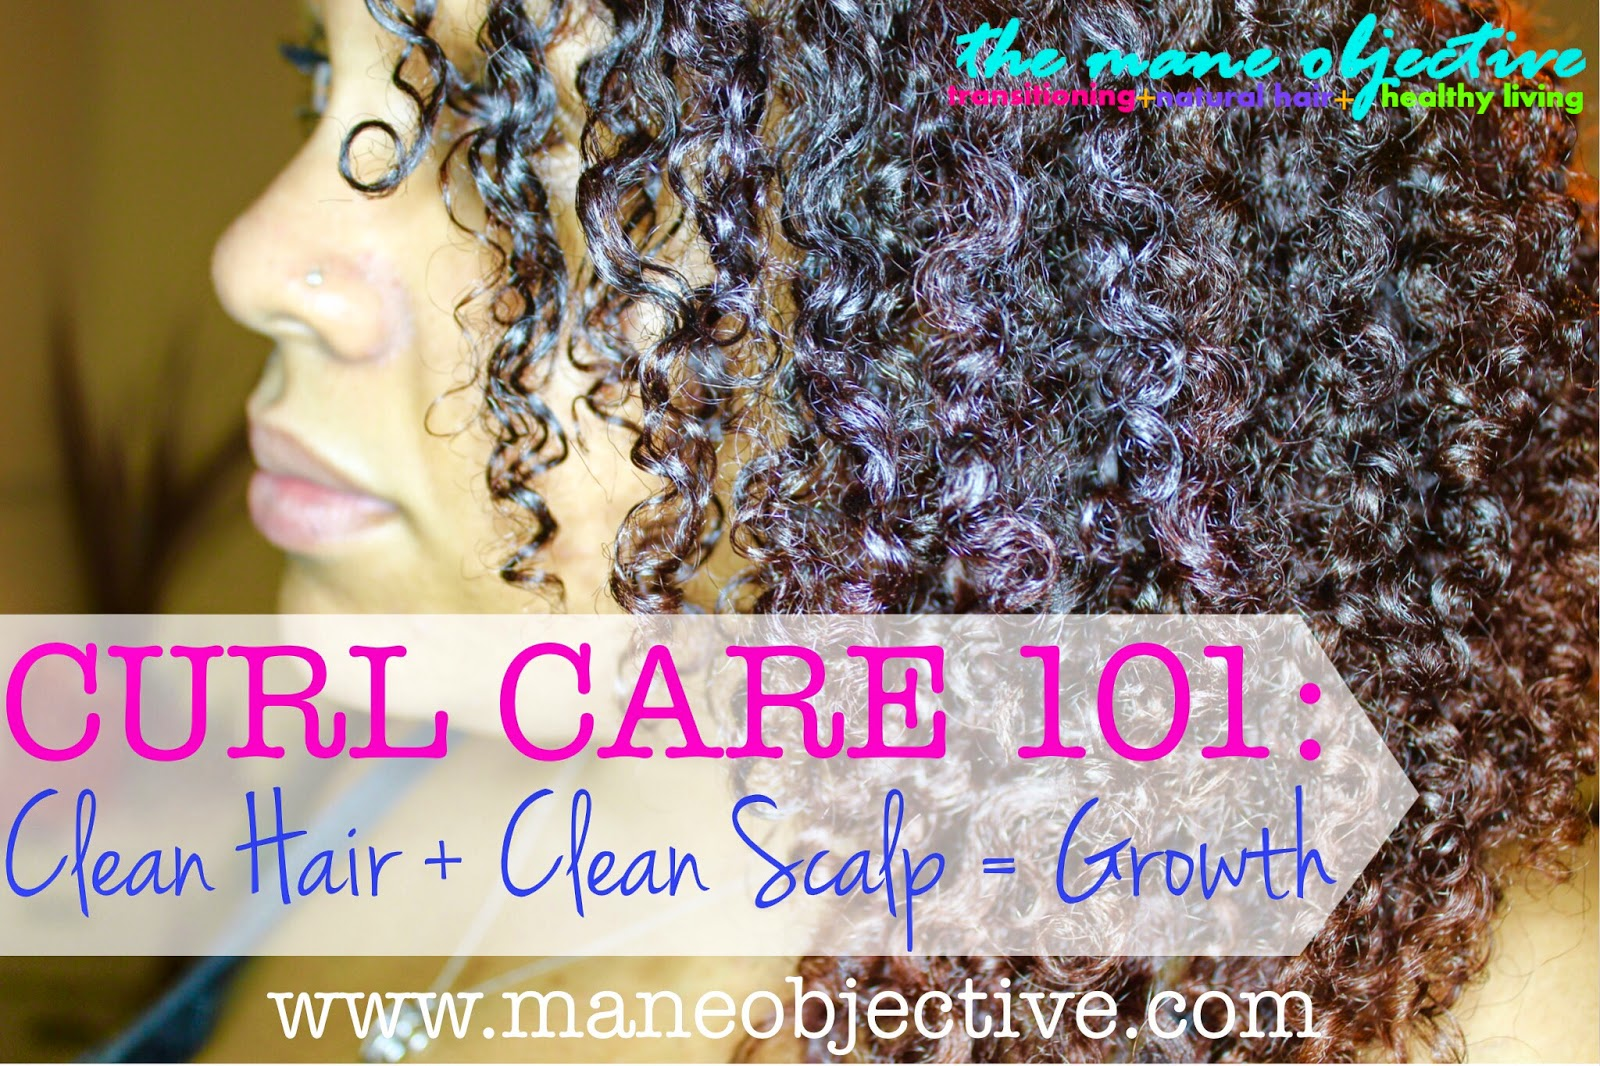 curl-care-101-shampoo-cowash-natural-hair-growth